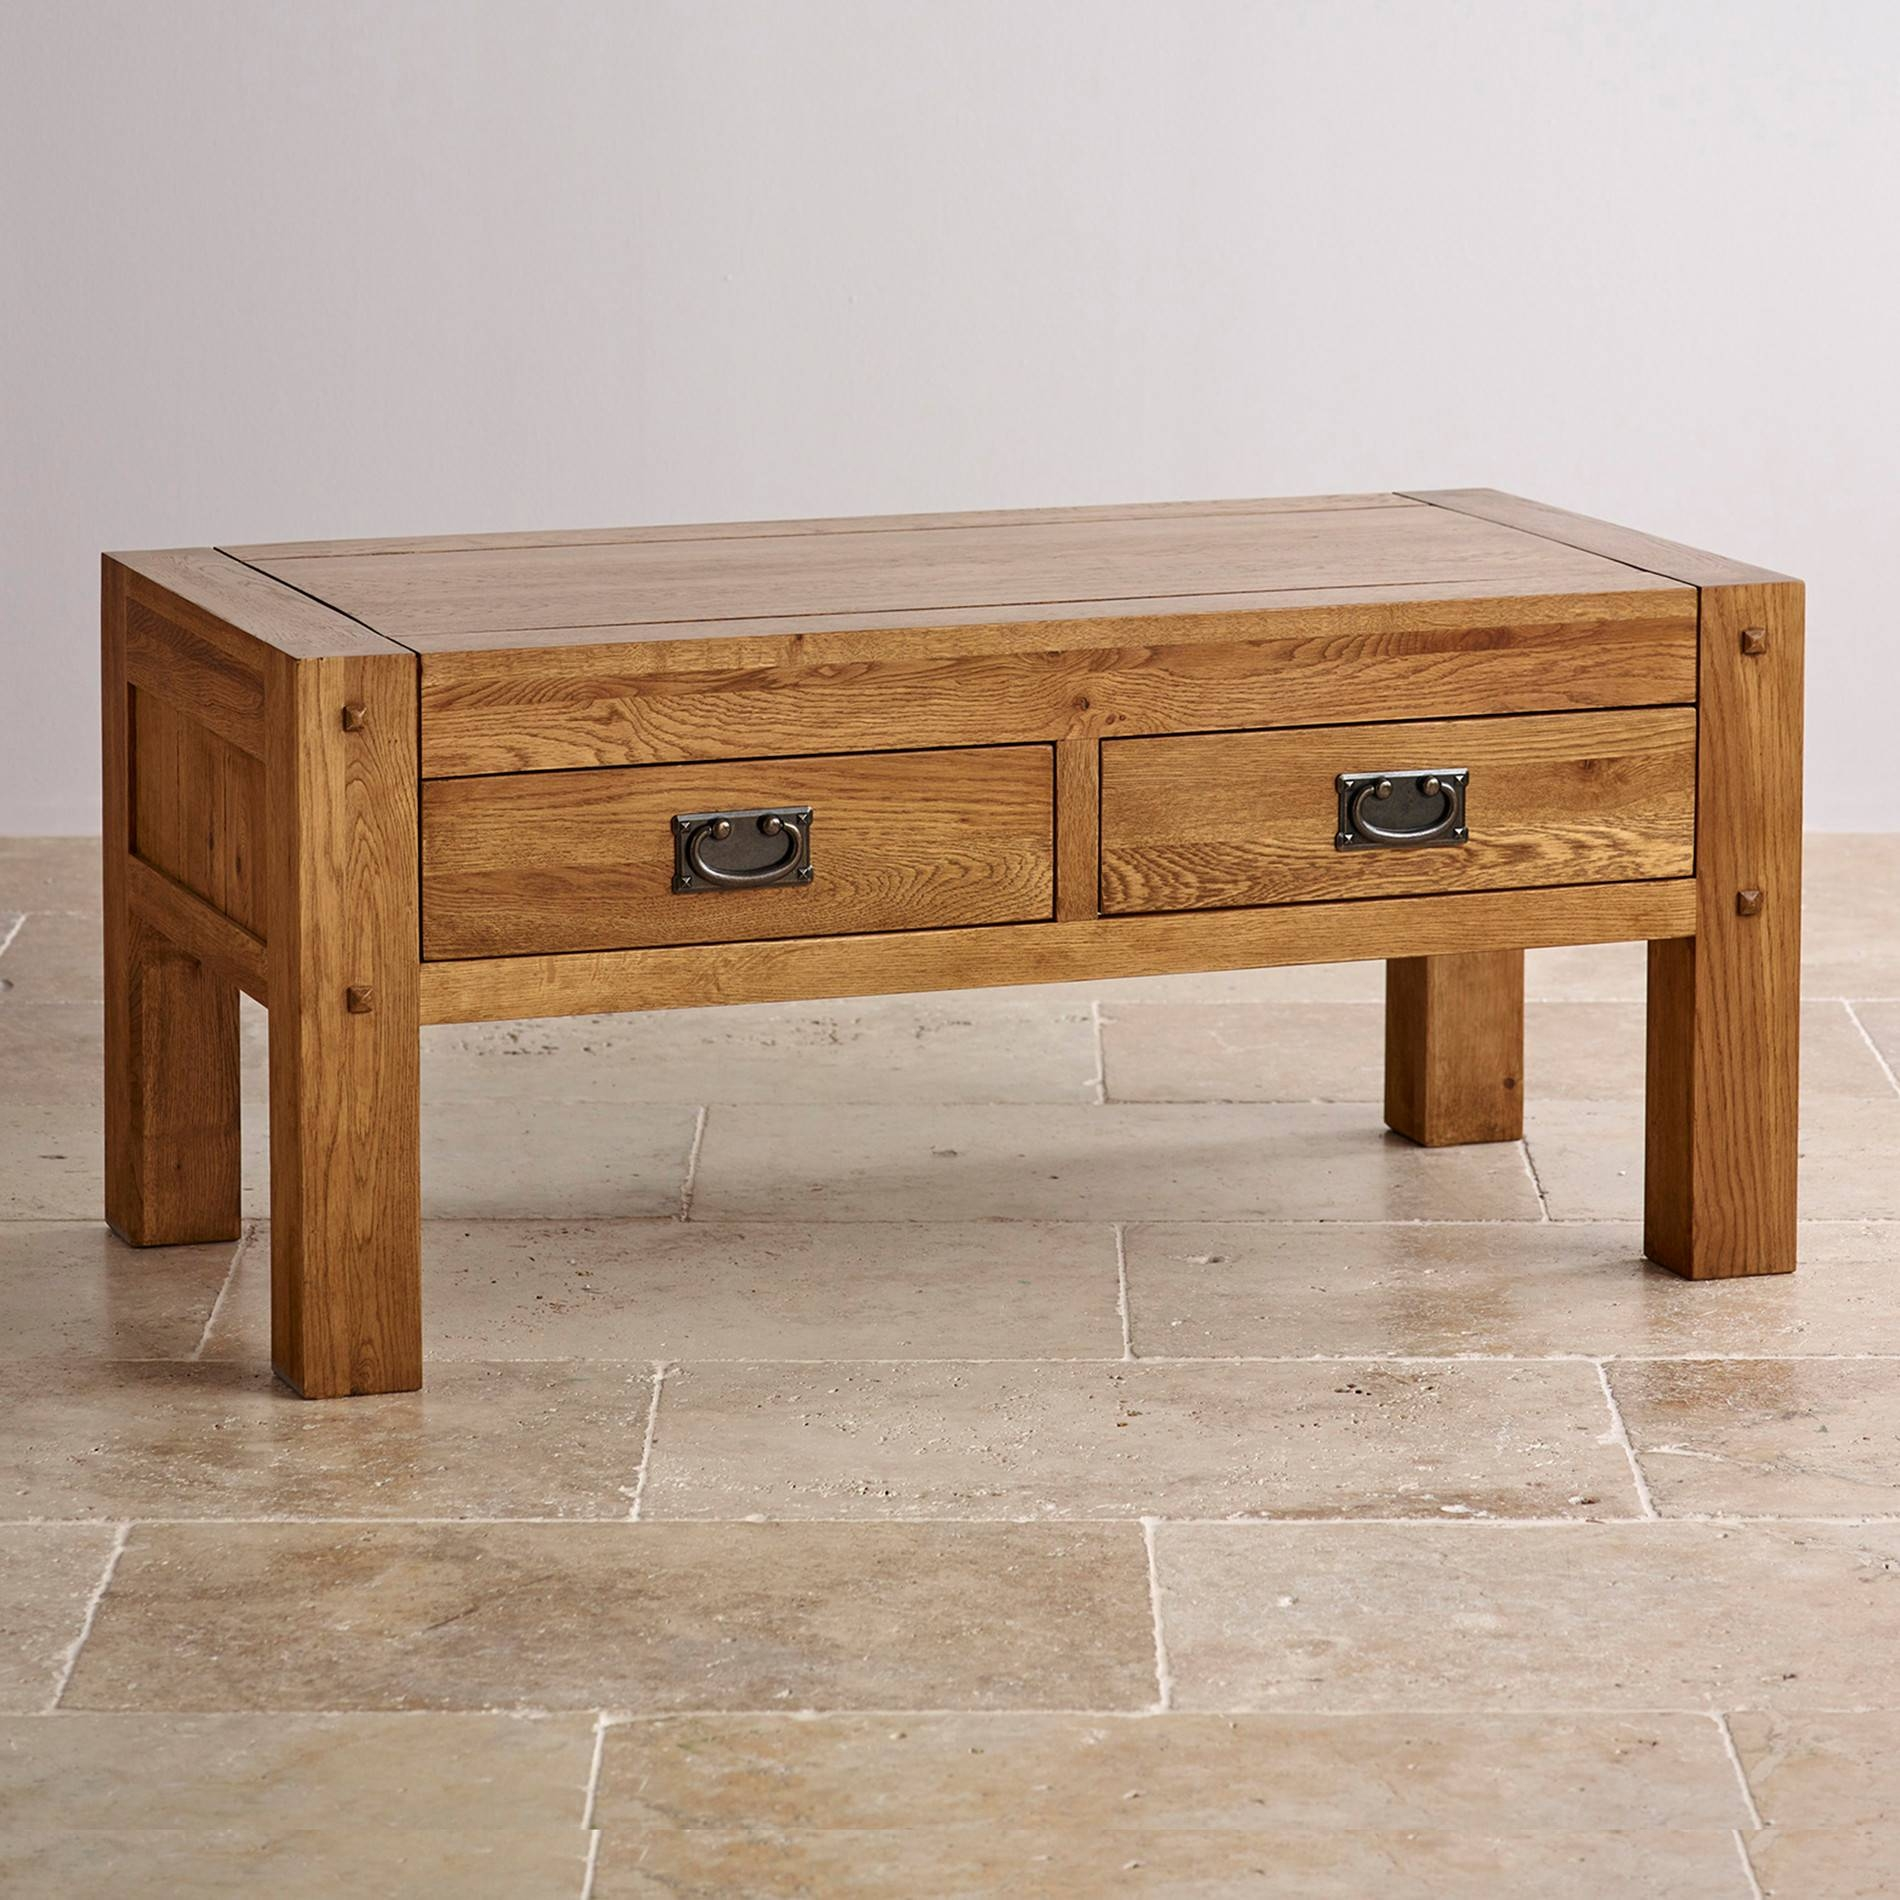 Quercus Coffee Table | Rustic Solid Oak | Oak Furniture Land pertaining to Oak Wood Coffee Tables (Image 13 of 15)